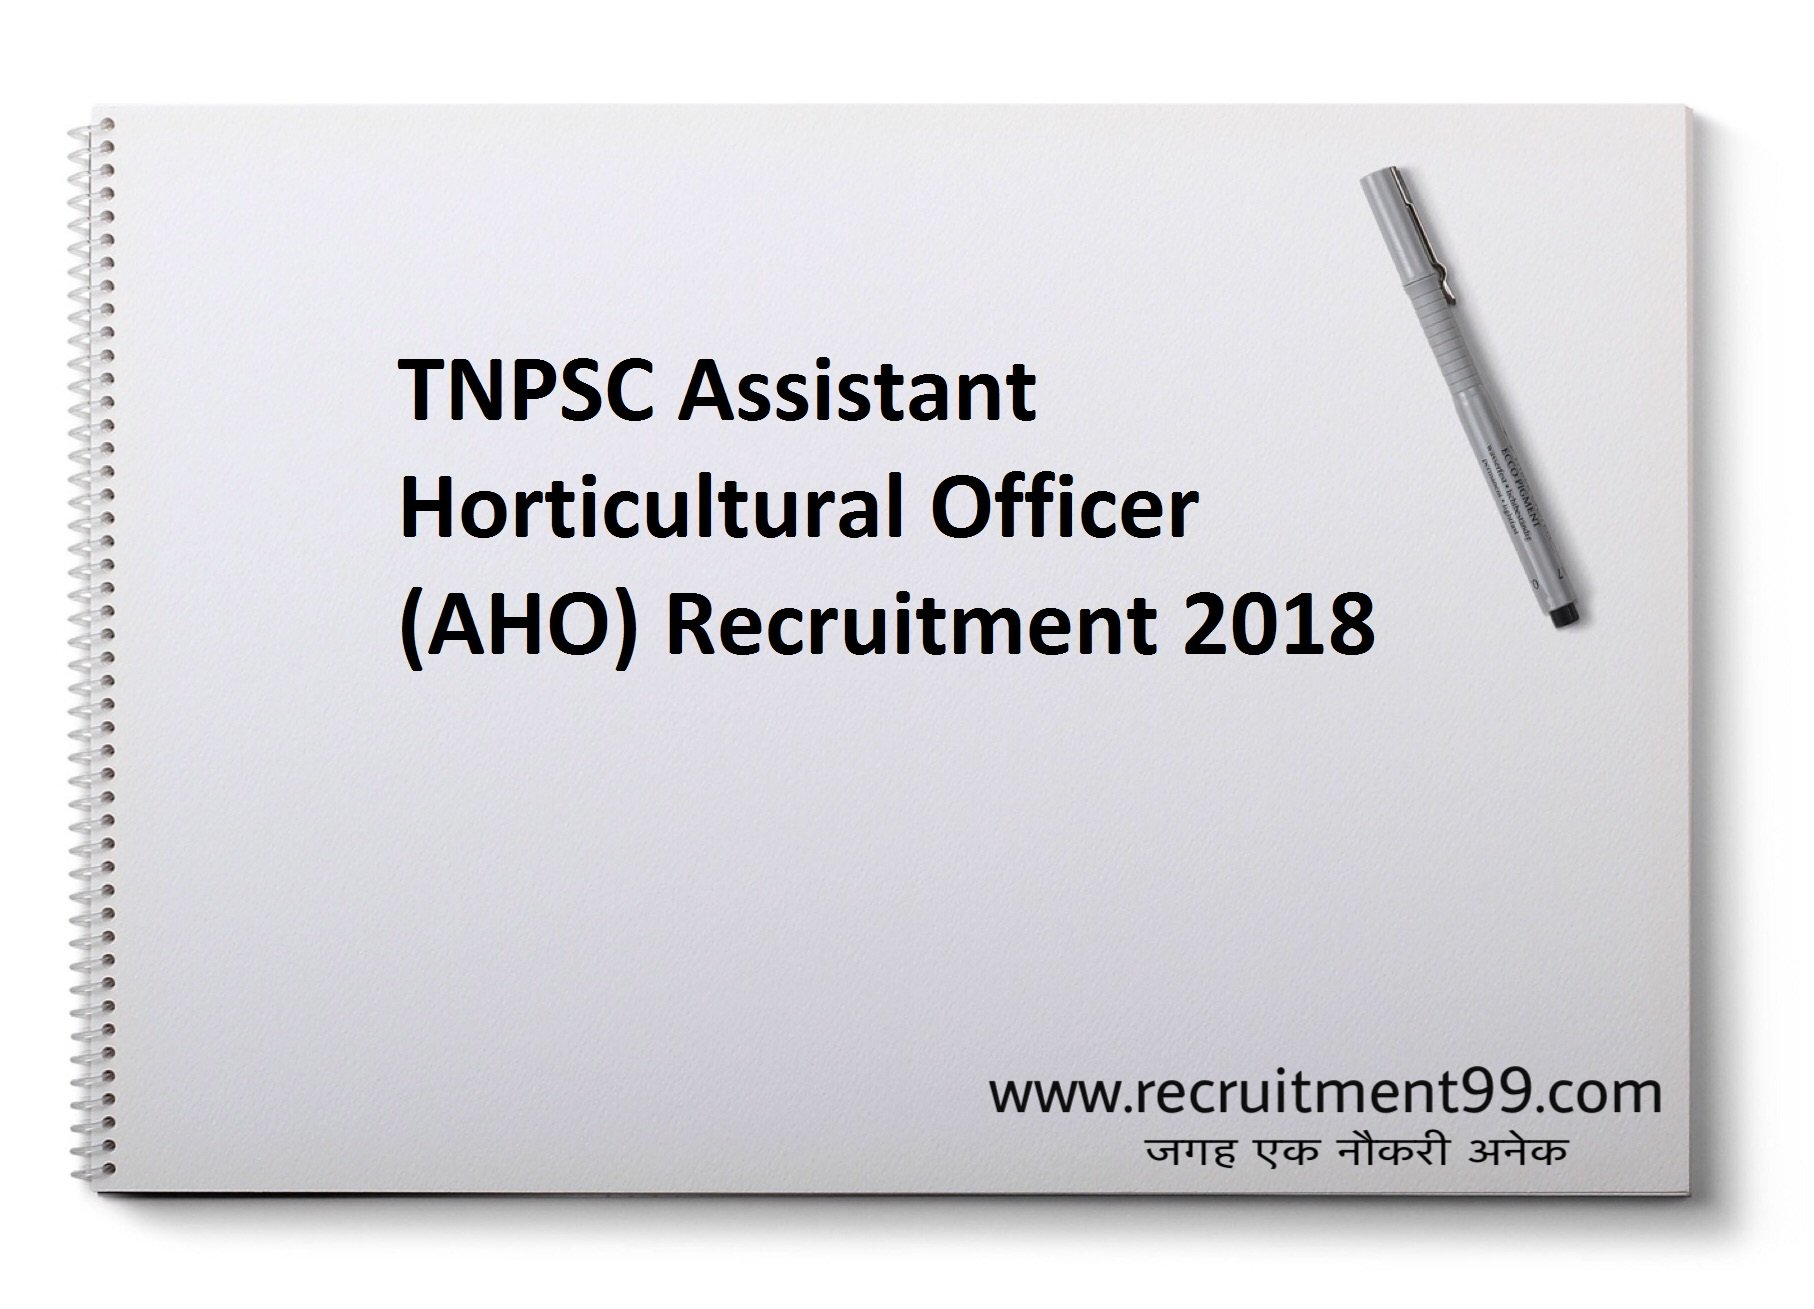 TNPSC Assistant Horticultural Officer (AHO) Recruitment Hall Ticket Result 2018